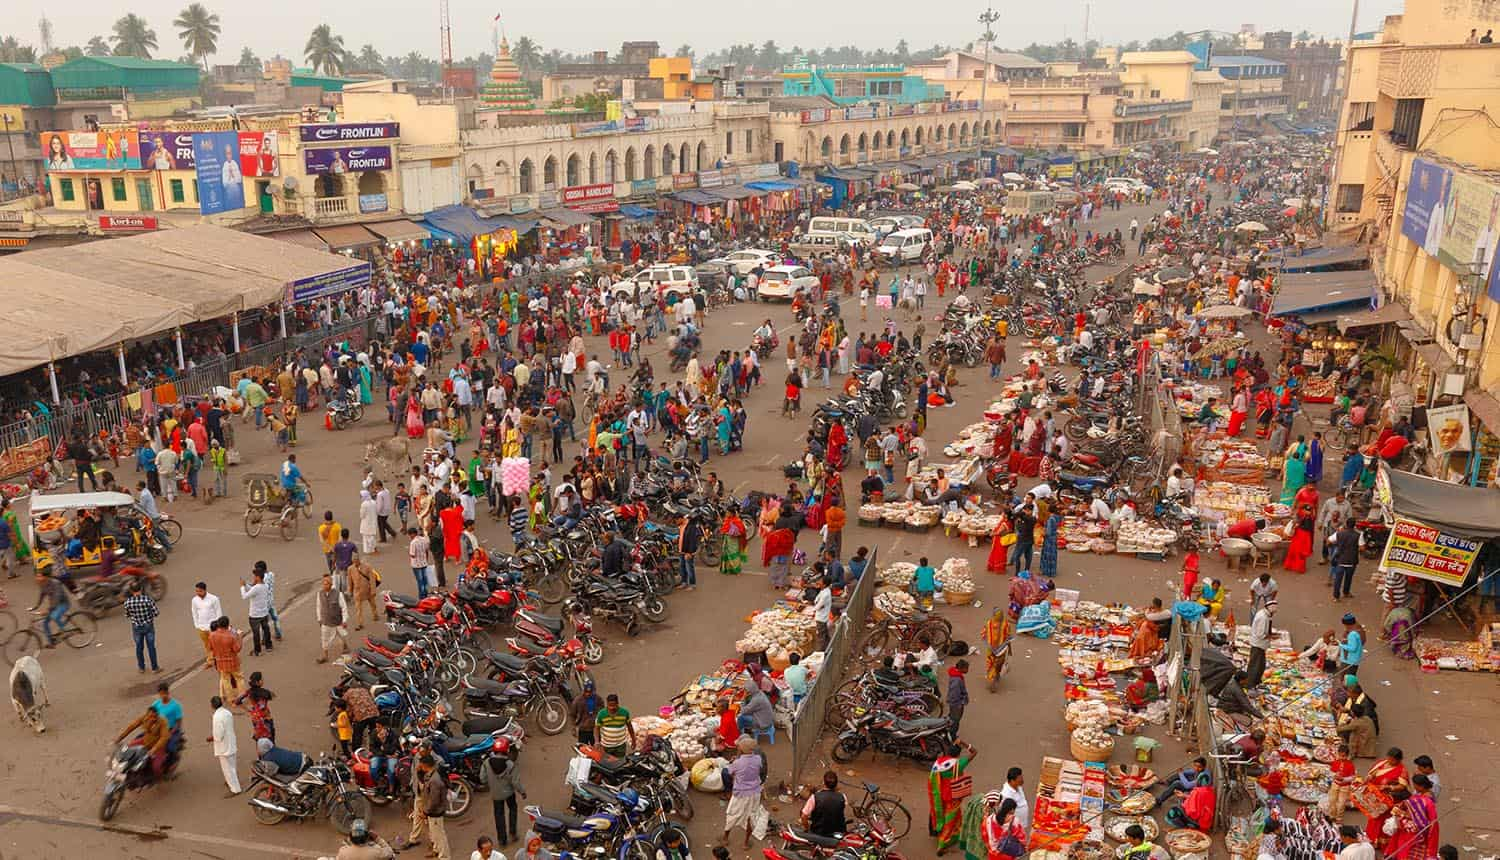 View of the crowded street market in India showing privacy and surveillance concerns of facial recognition system